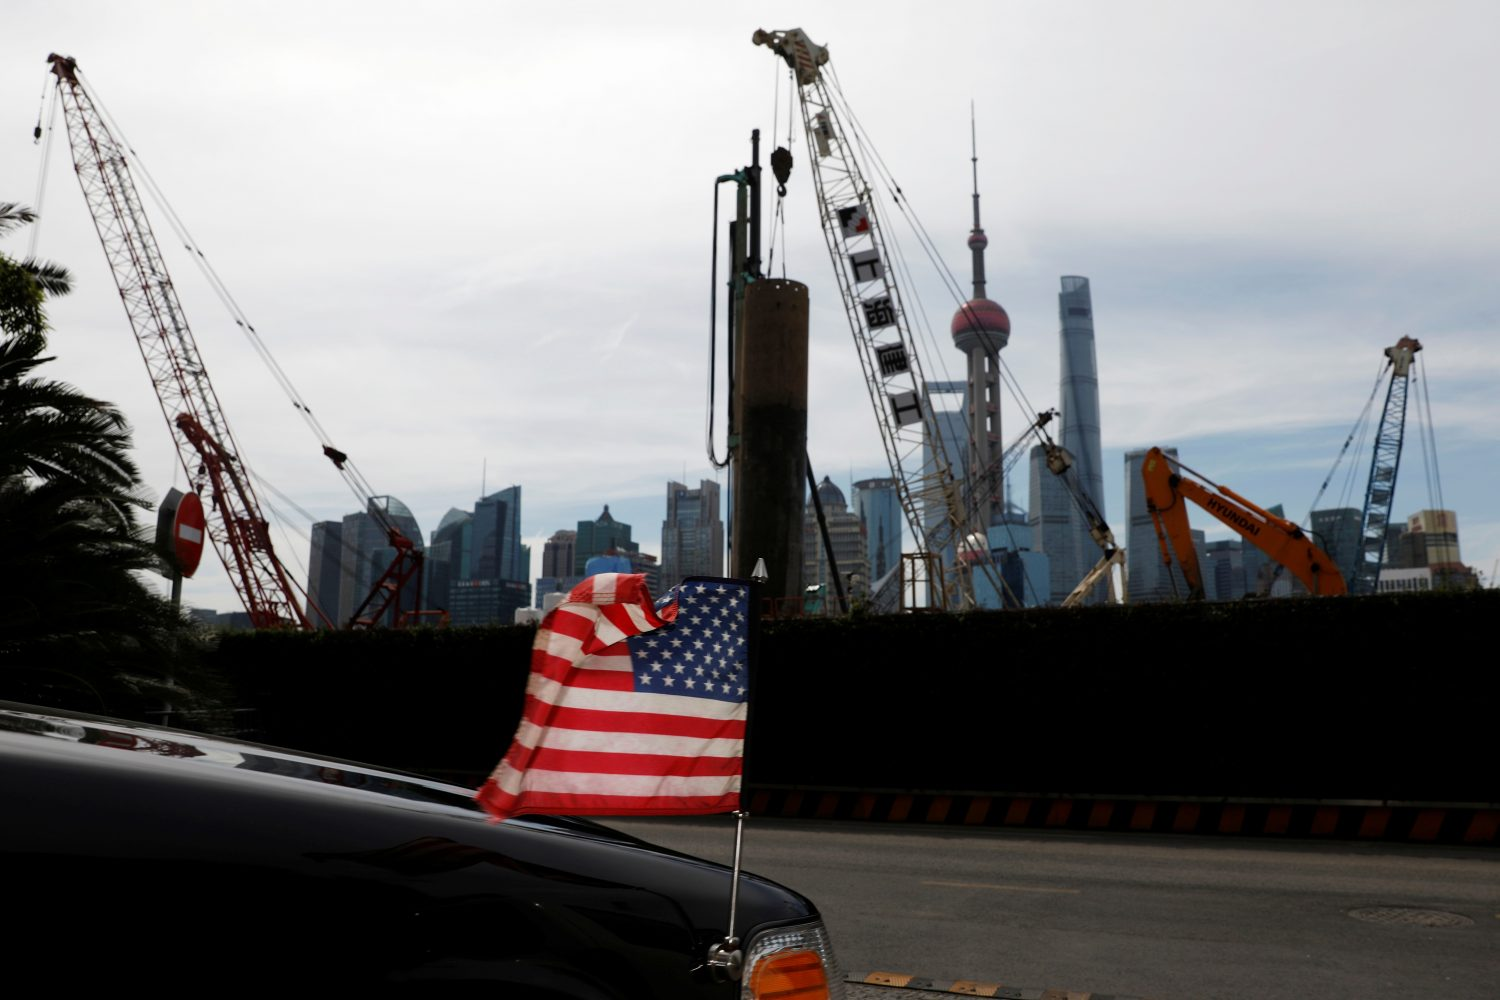 FILE PHOTO: A U.S. flag on an embassy car is seen outside a hotel near a construction site in Shanghai, China, July 31, 2019. REUTERS/Aly Song